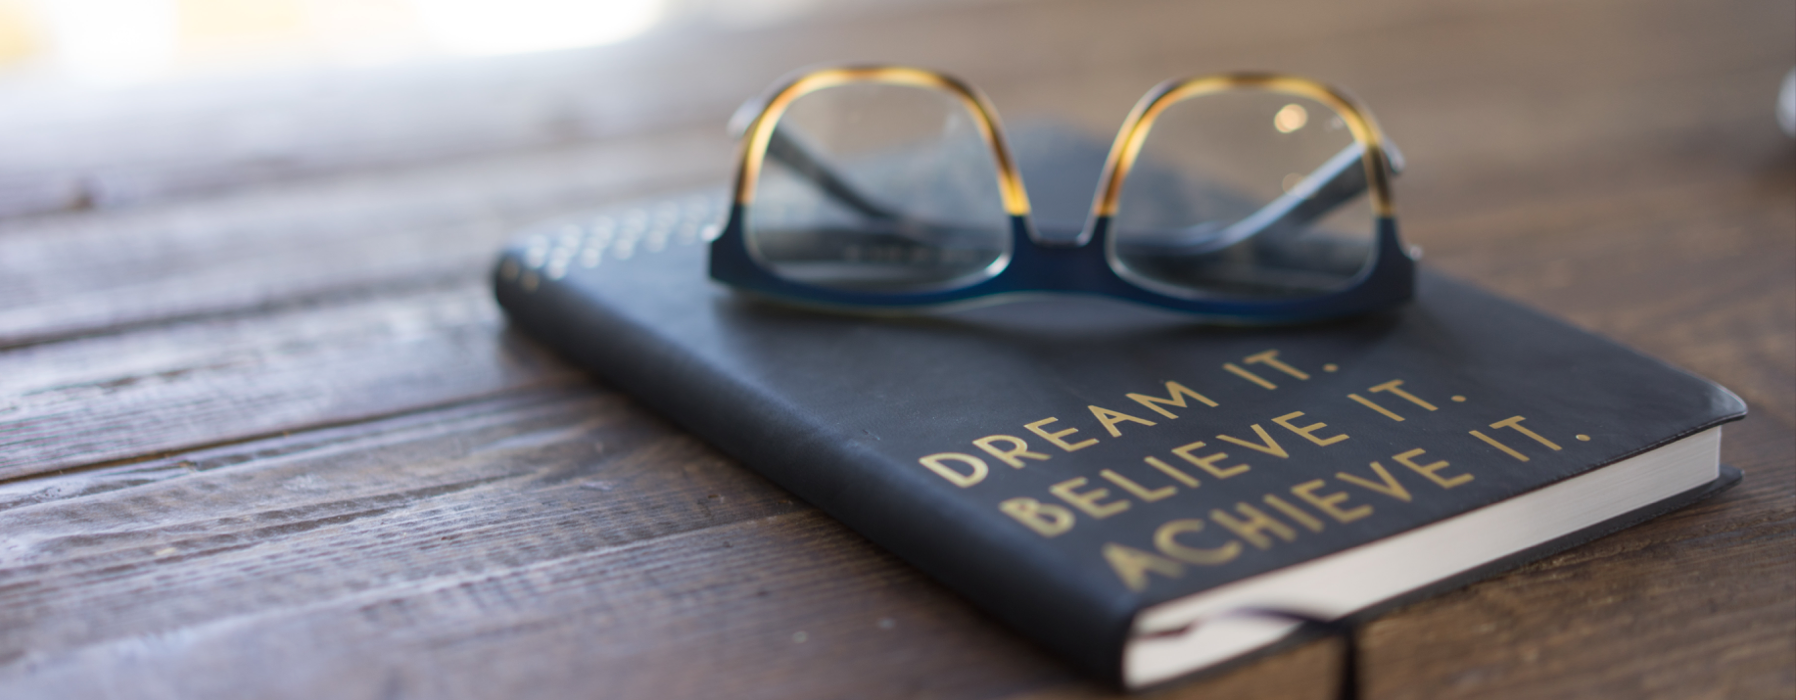 """Glass on top of journal reading """"Dream it. Believe it. Achieve it."""" Photo for Unsplash by Carolyn Christine."""